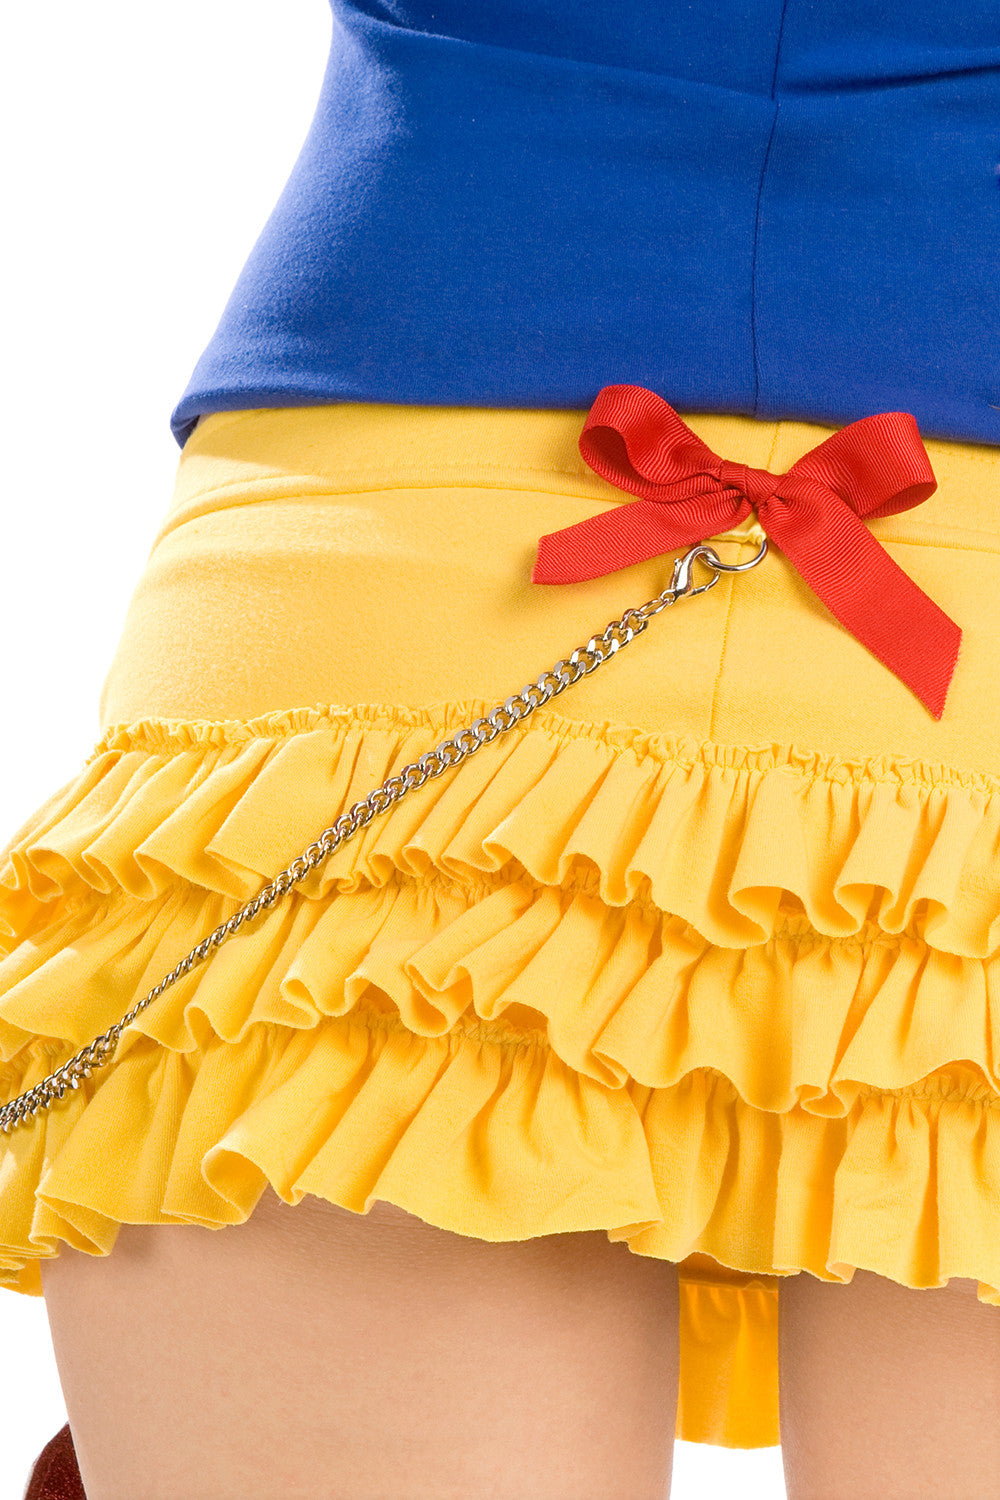 Snow White Ruffled Skirt with Purse & Chain